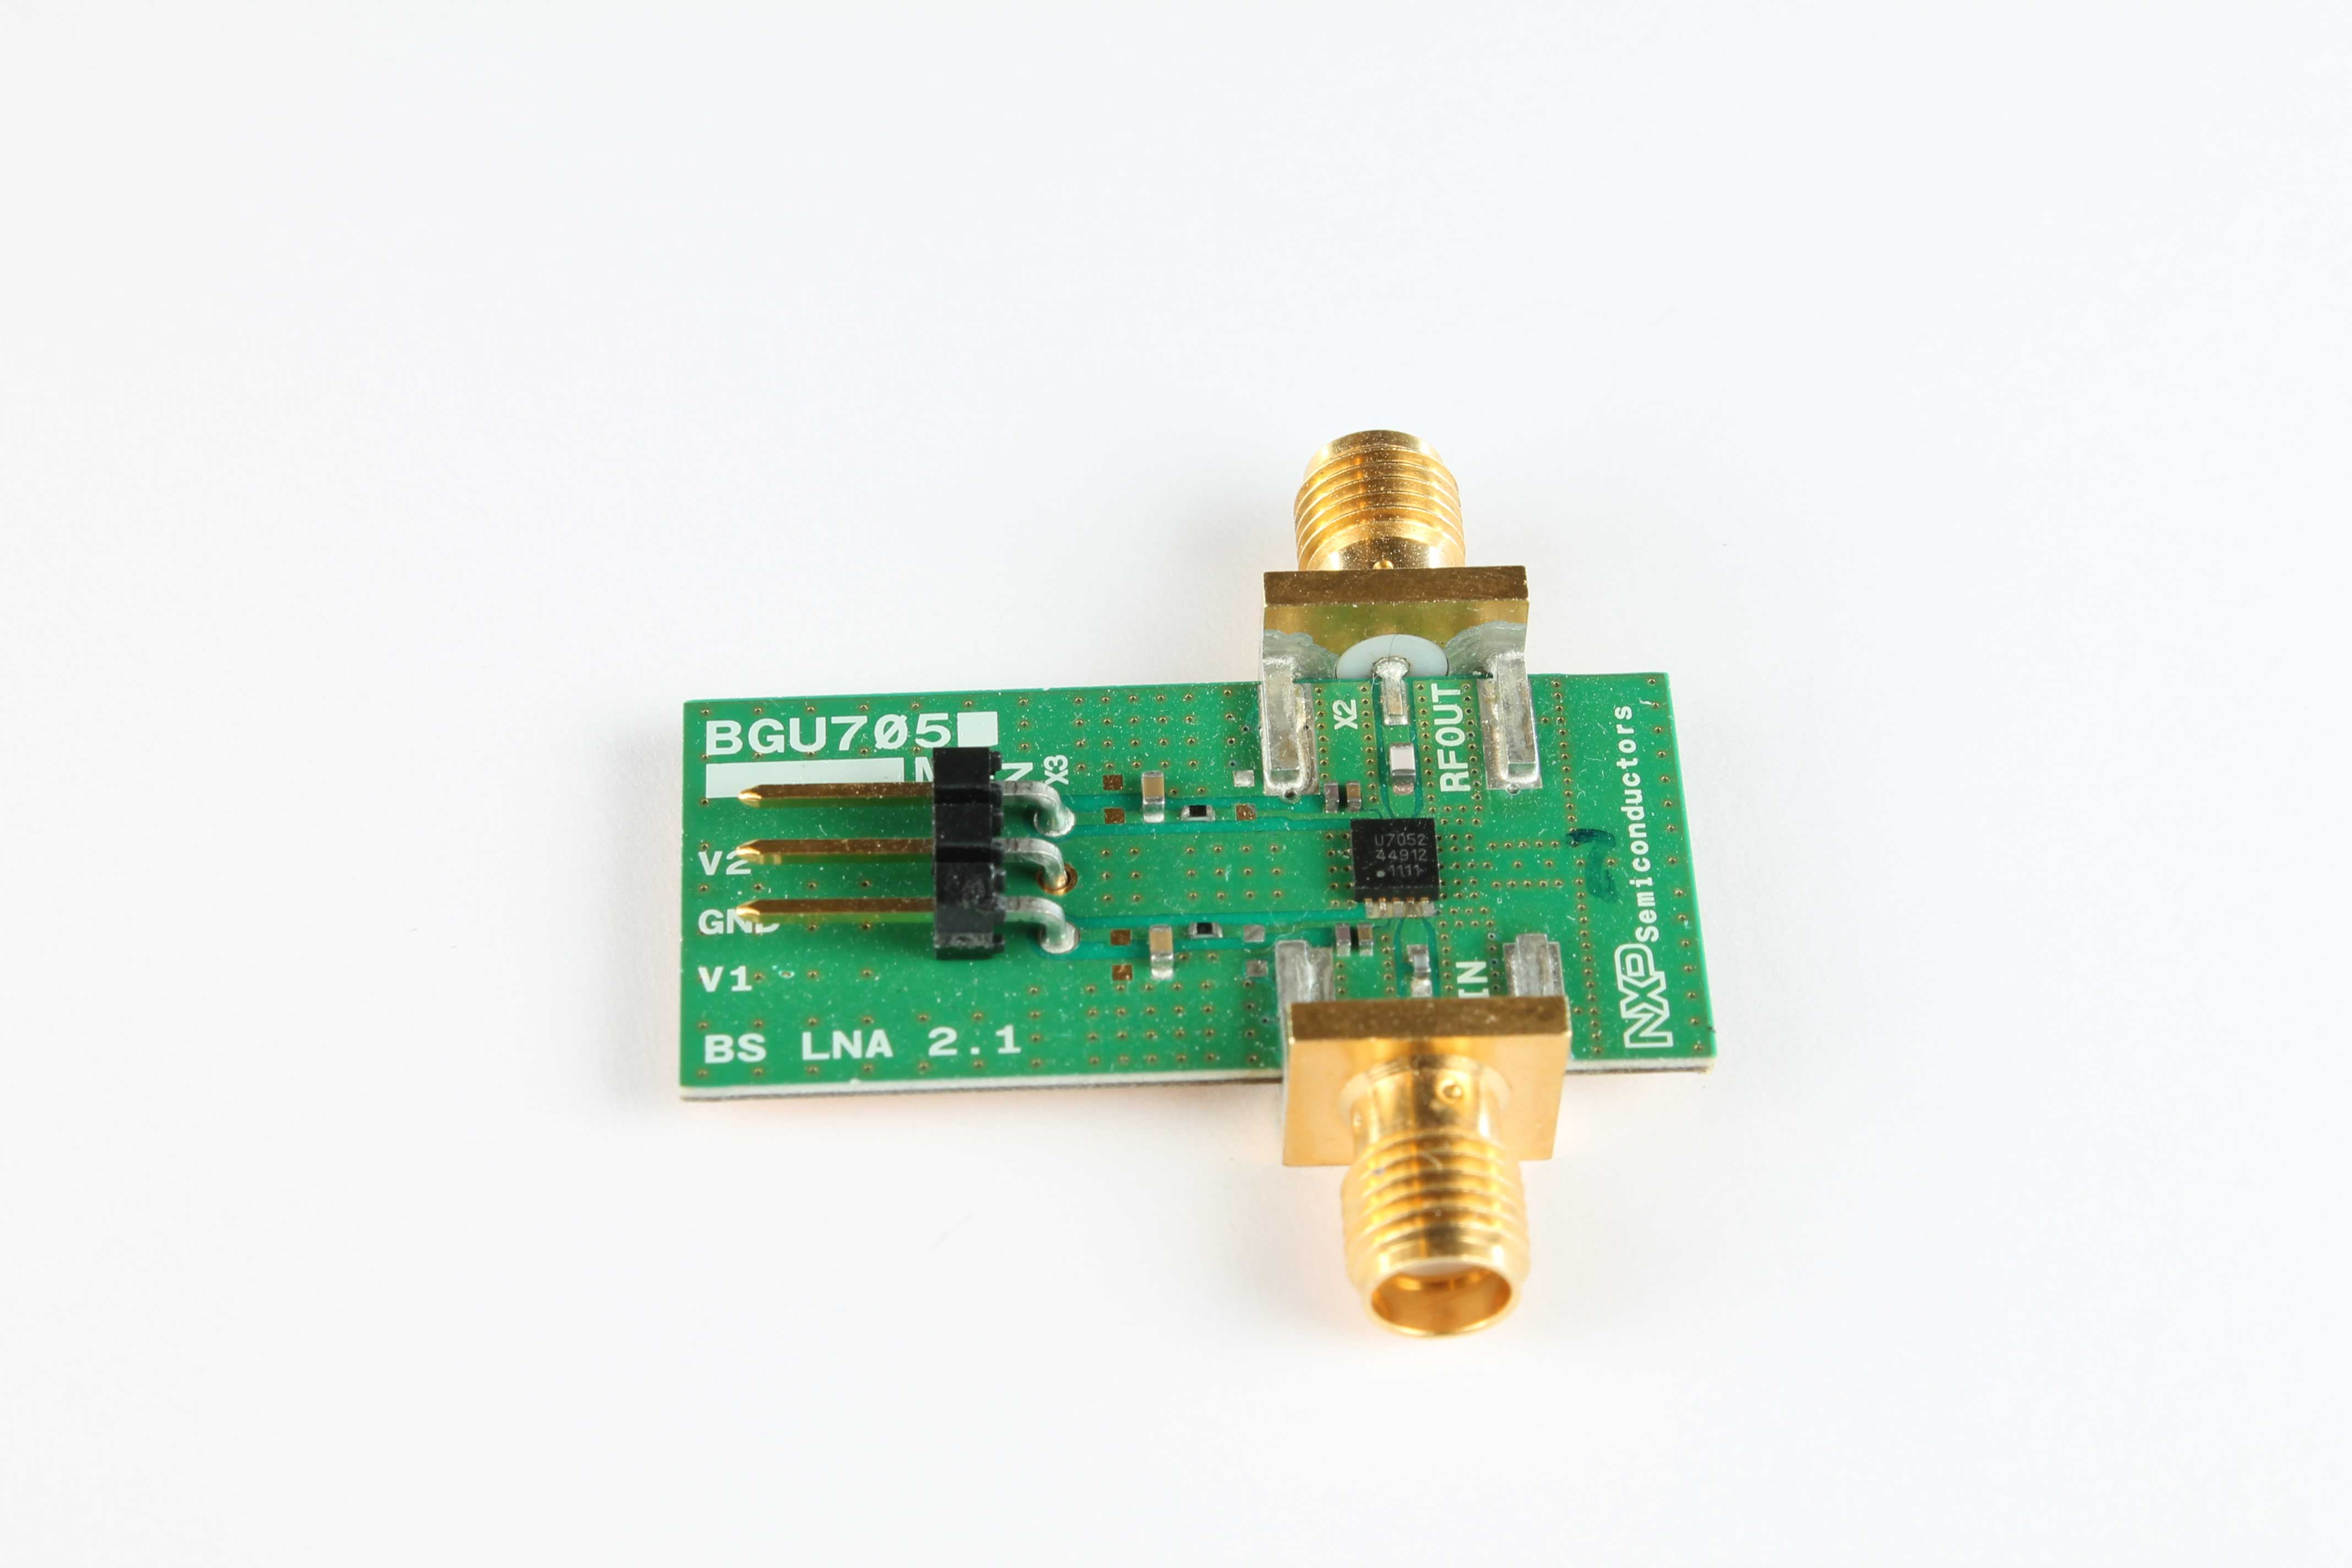 OM7927: evaluation board of the BGU7053